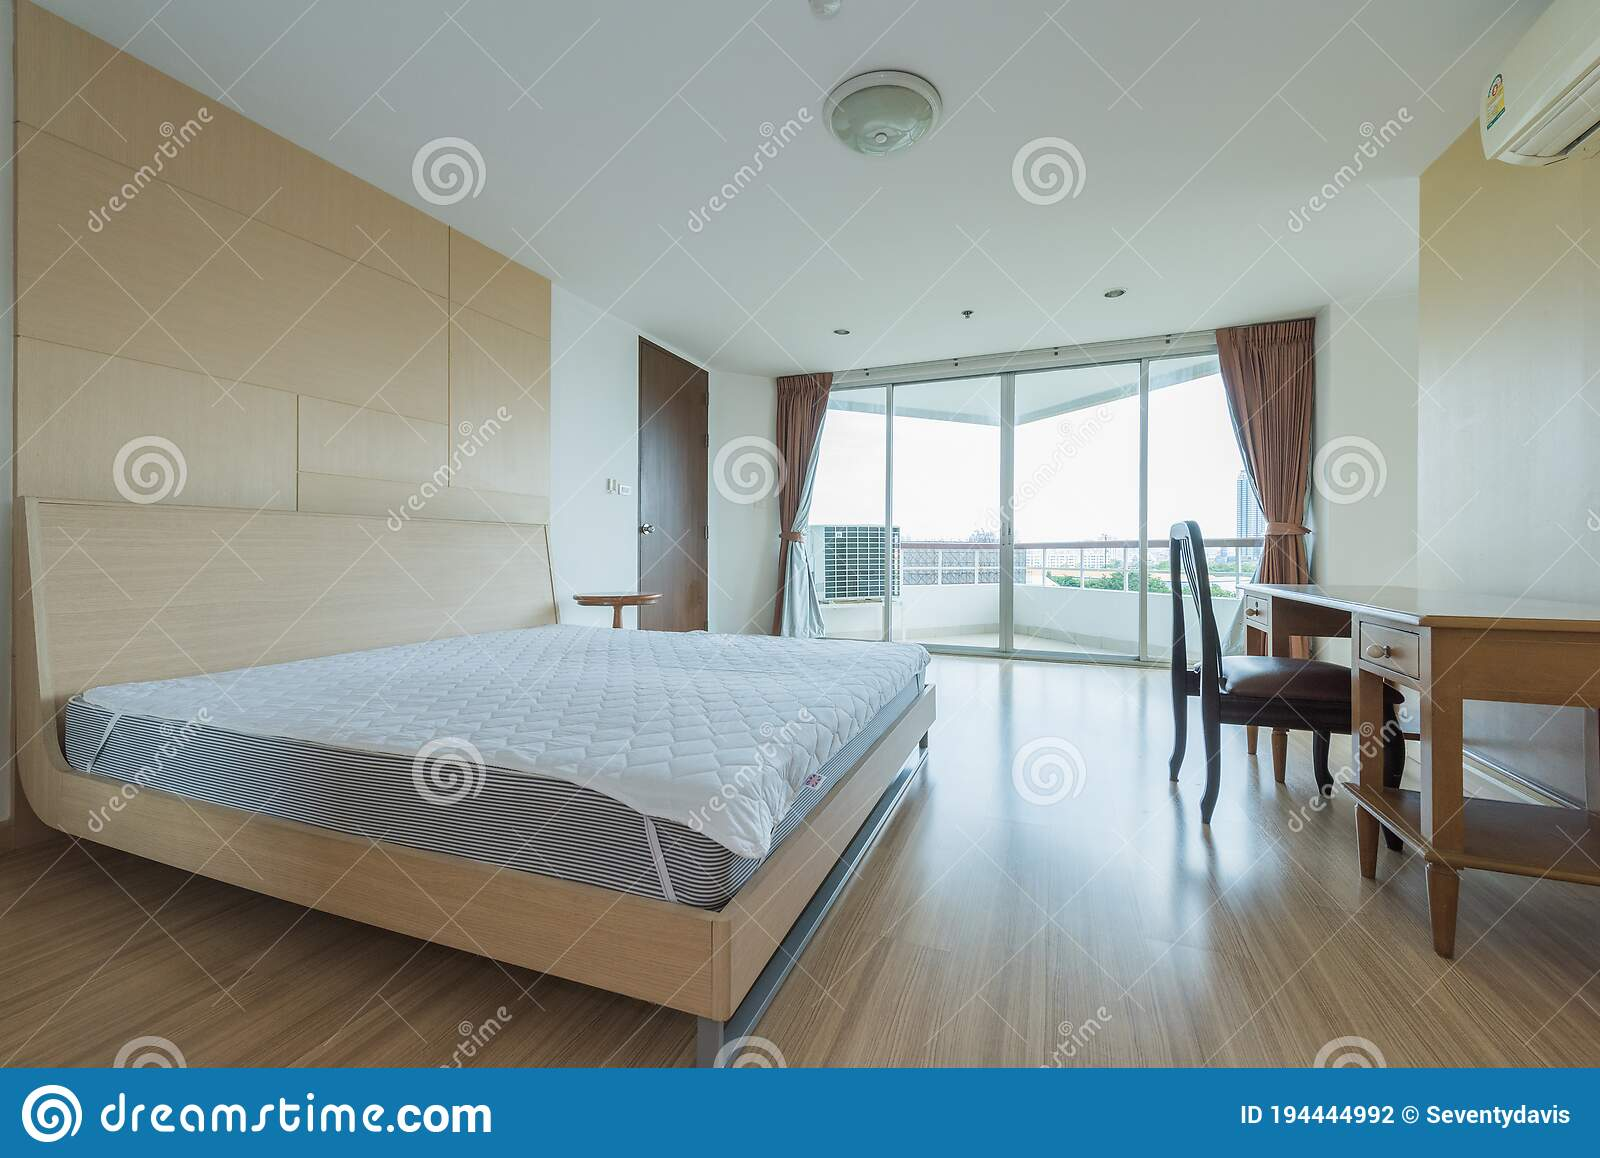 Modern Peaceful Bedroom Interior Design In Apartment Stock Photo Image Of Apartment Clean 194444992